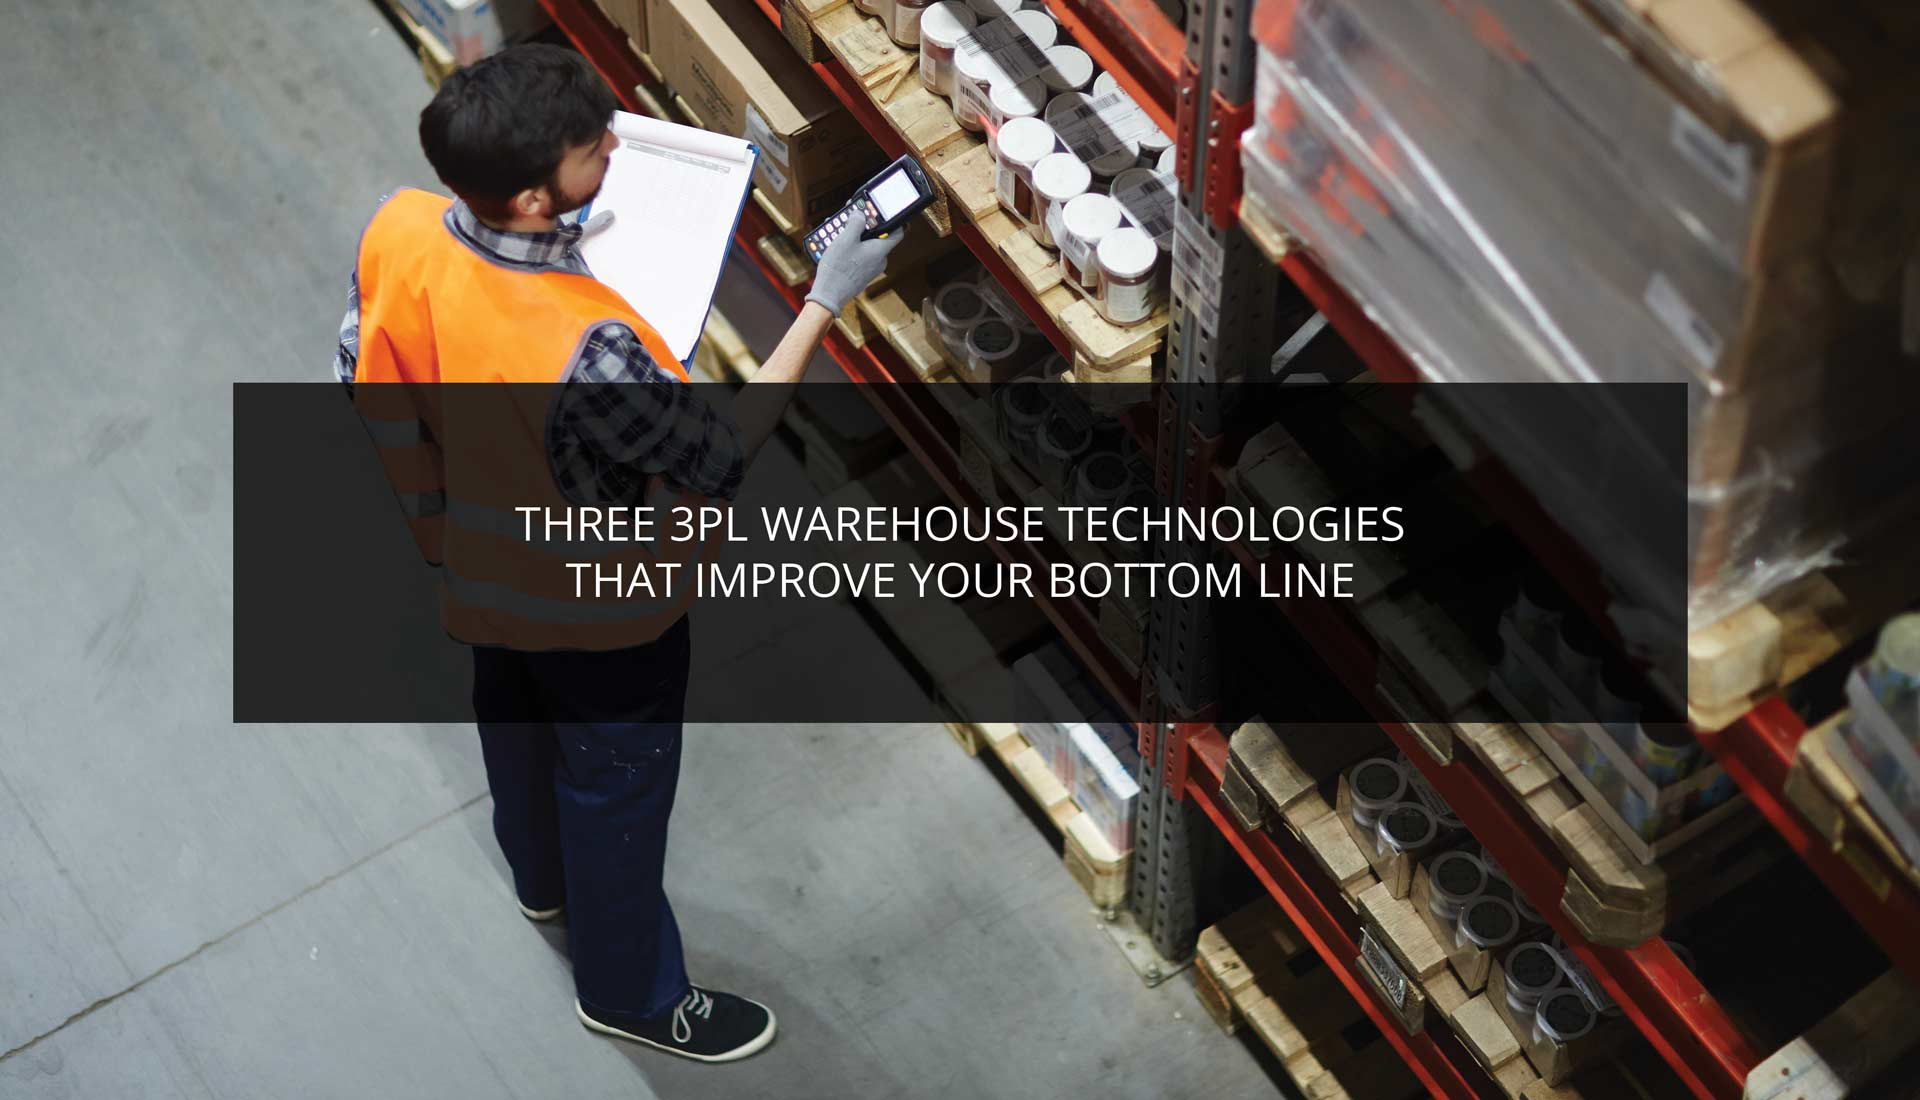 Three 3PL Warehouse Technologies That Improve Your Bottom Line